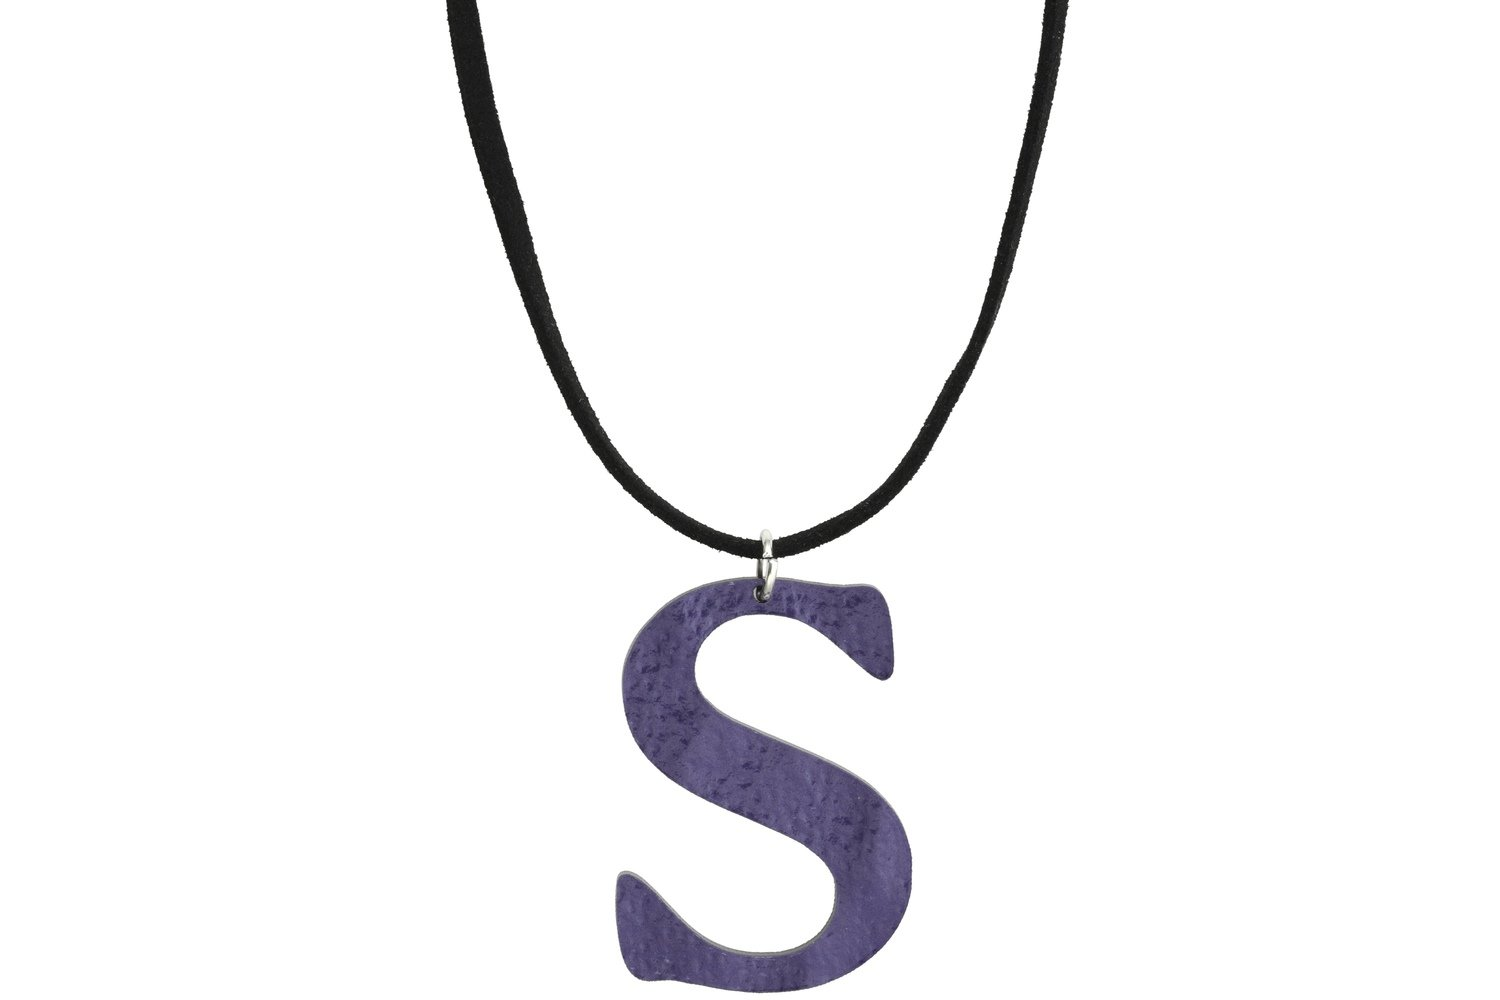 Sculpted Alphabet Pendant with Suede Leather Cord Necklace